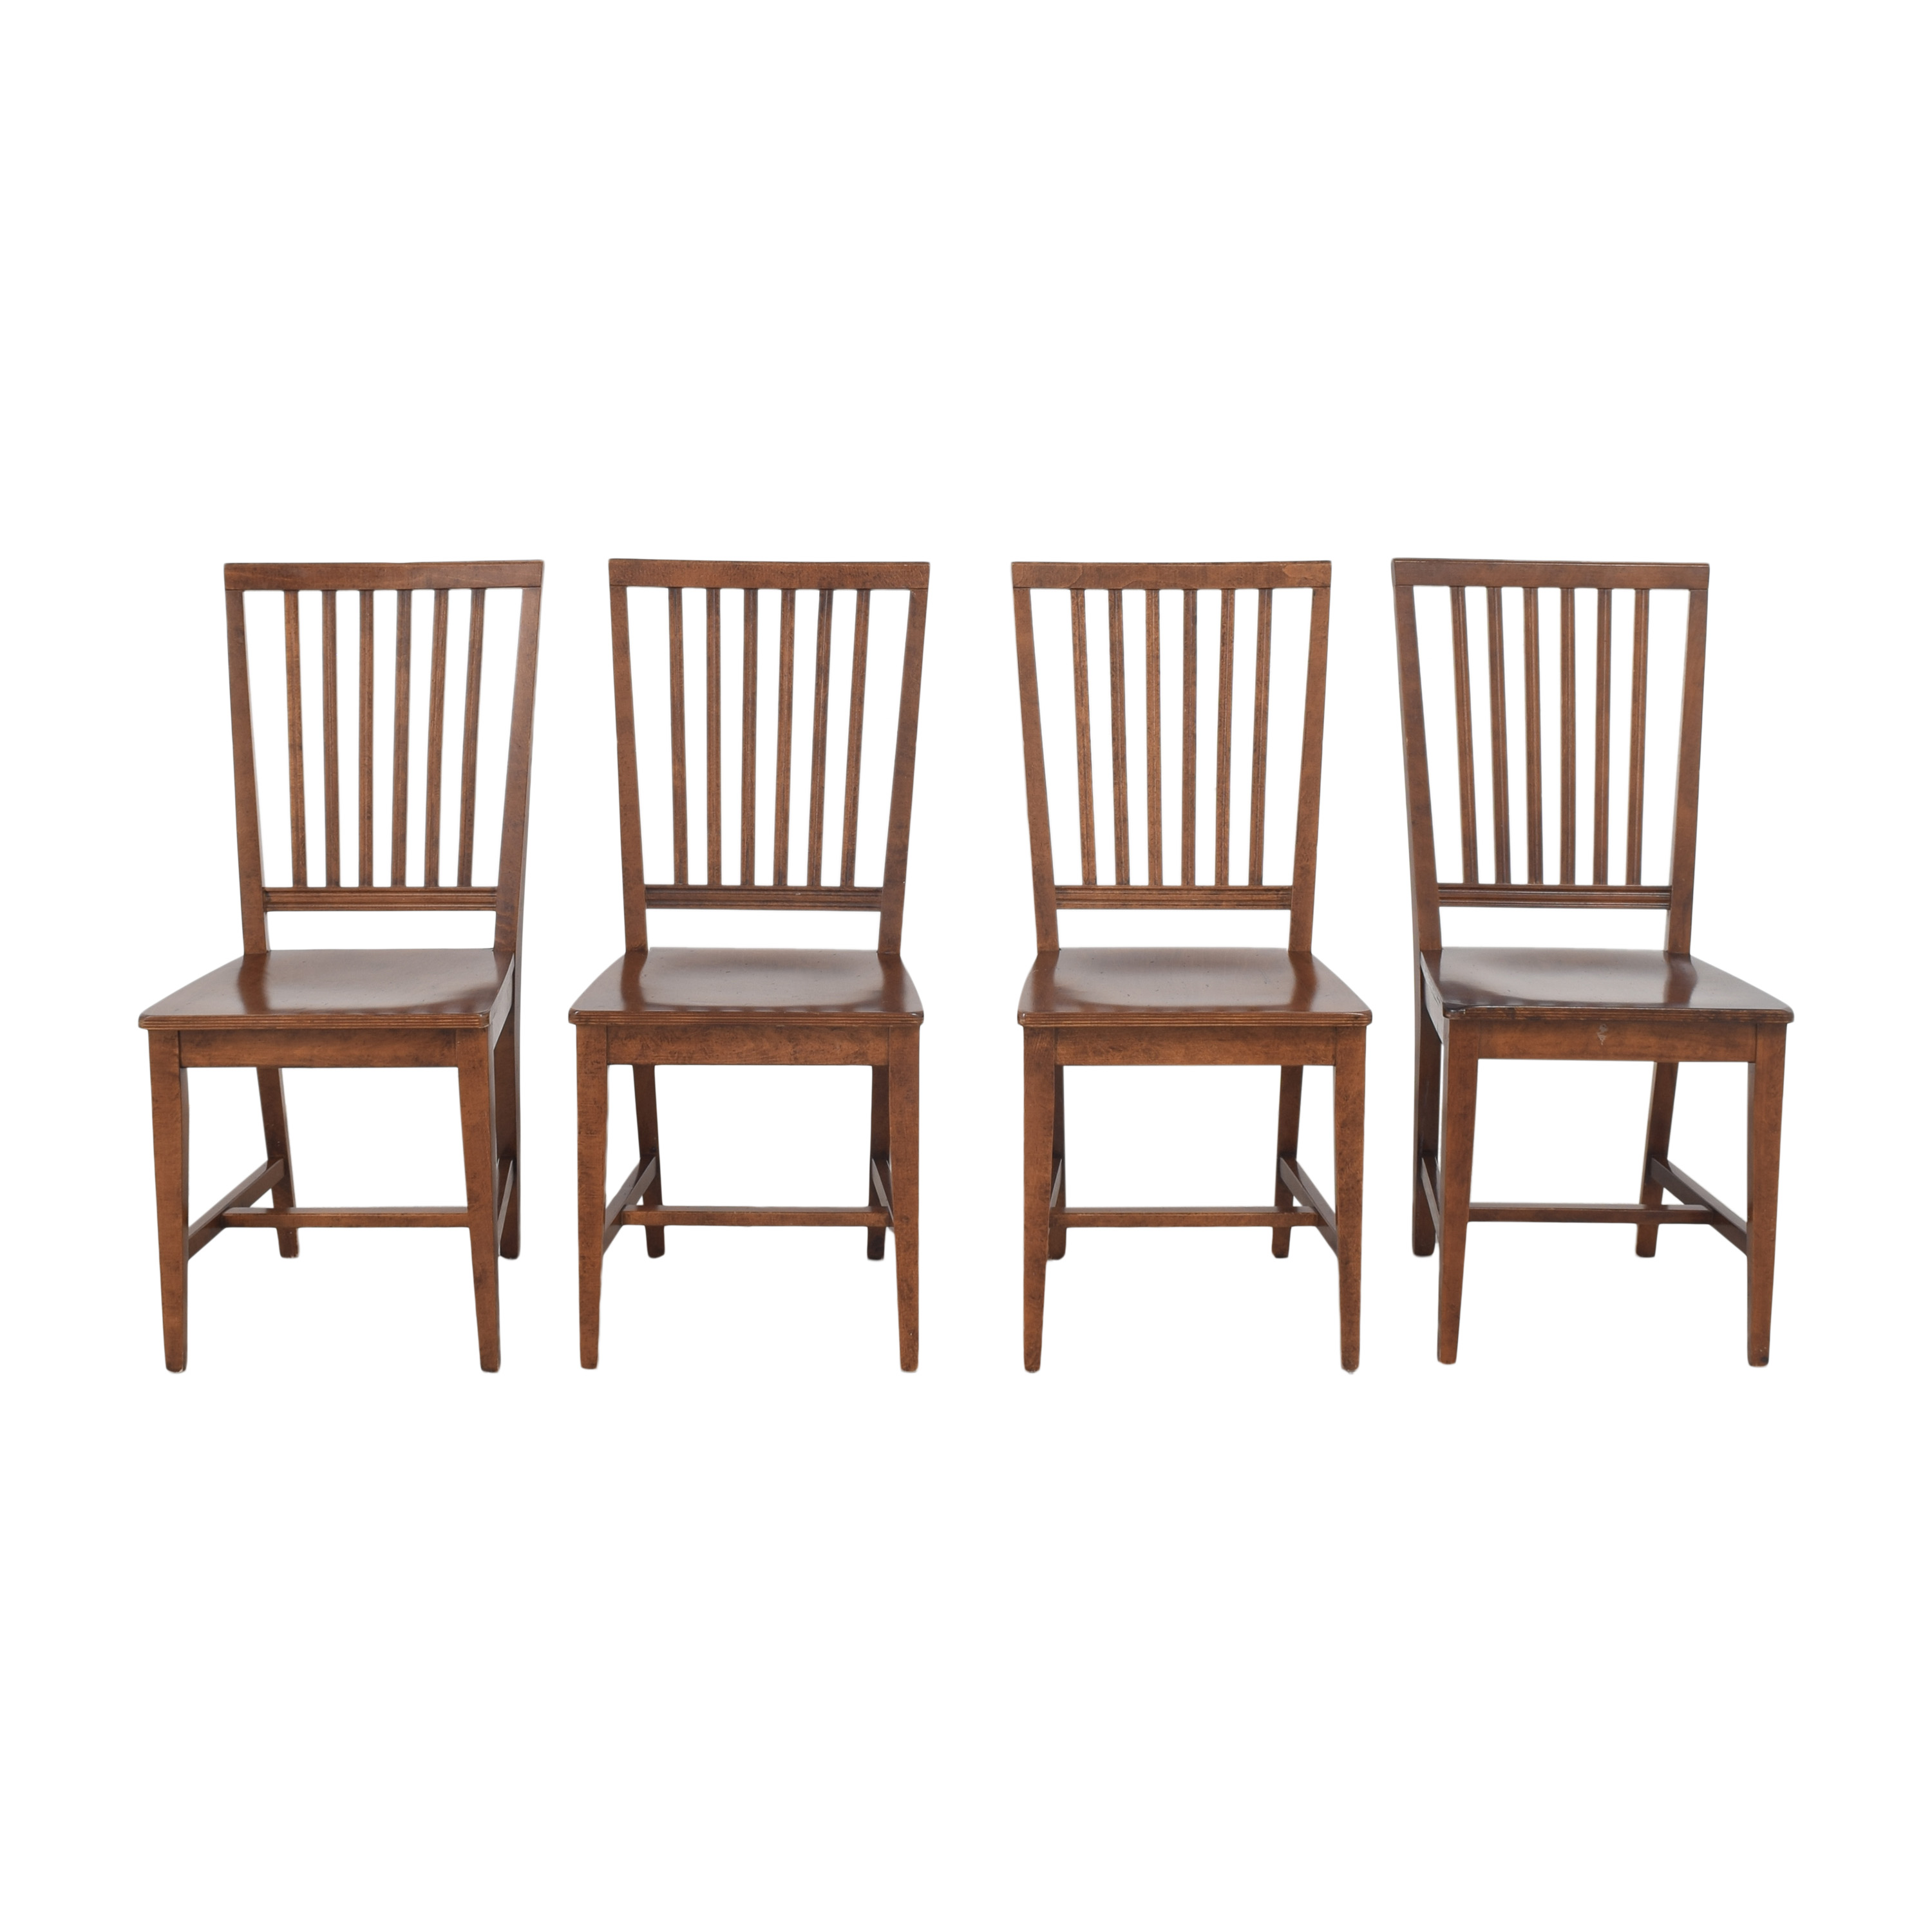 Crate & Barrel Crate & Barrel Village Nero Noche Dining Chairs nj